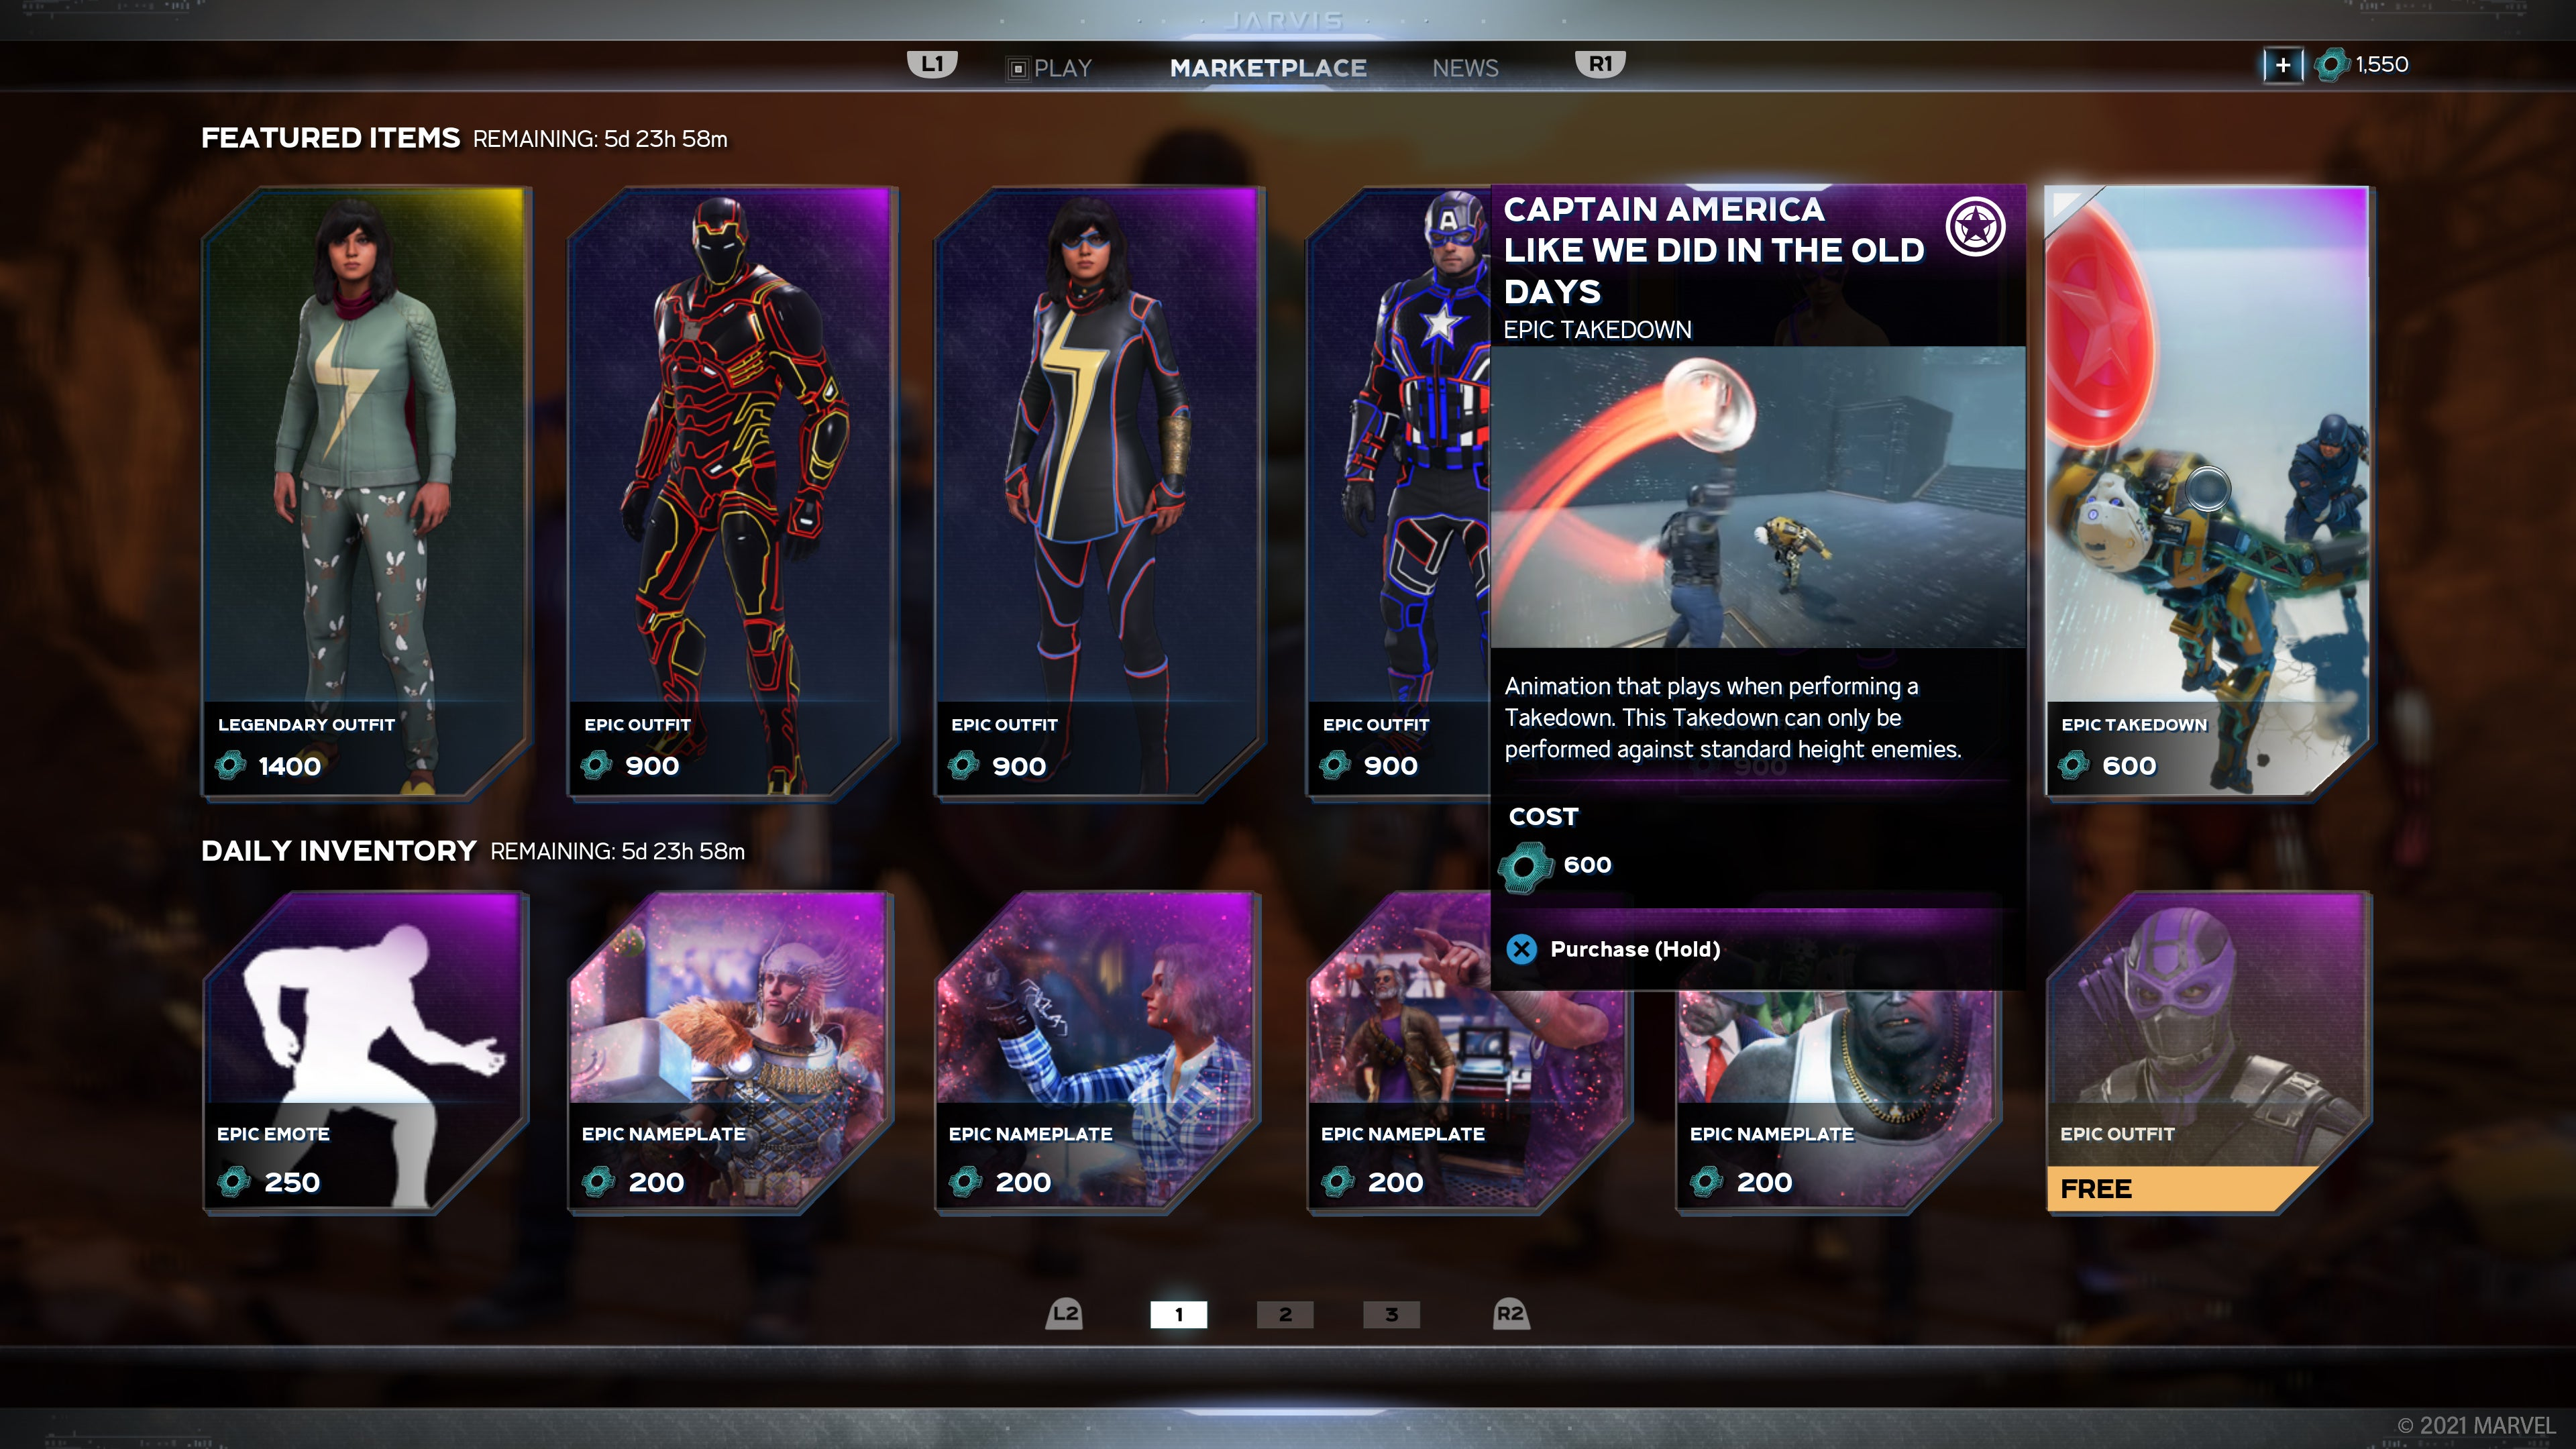 This week's Marketplace, highlighting the Captain America Takedown.